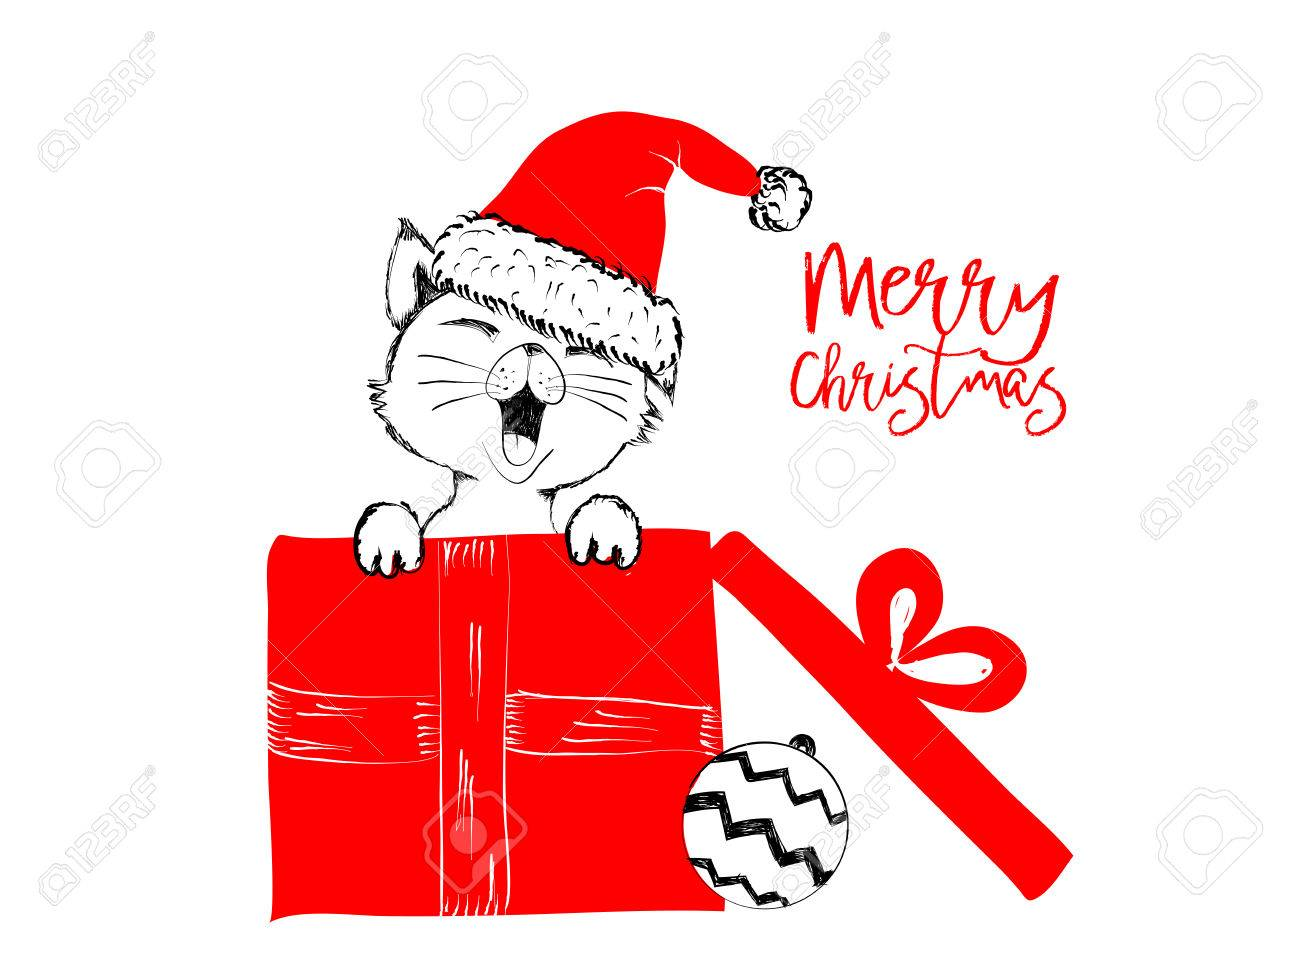 It Christmas Merr Christmas.Merry Christmas Greetings Cards Hand Drawn With Black And Red